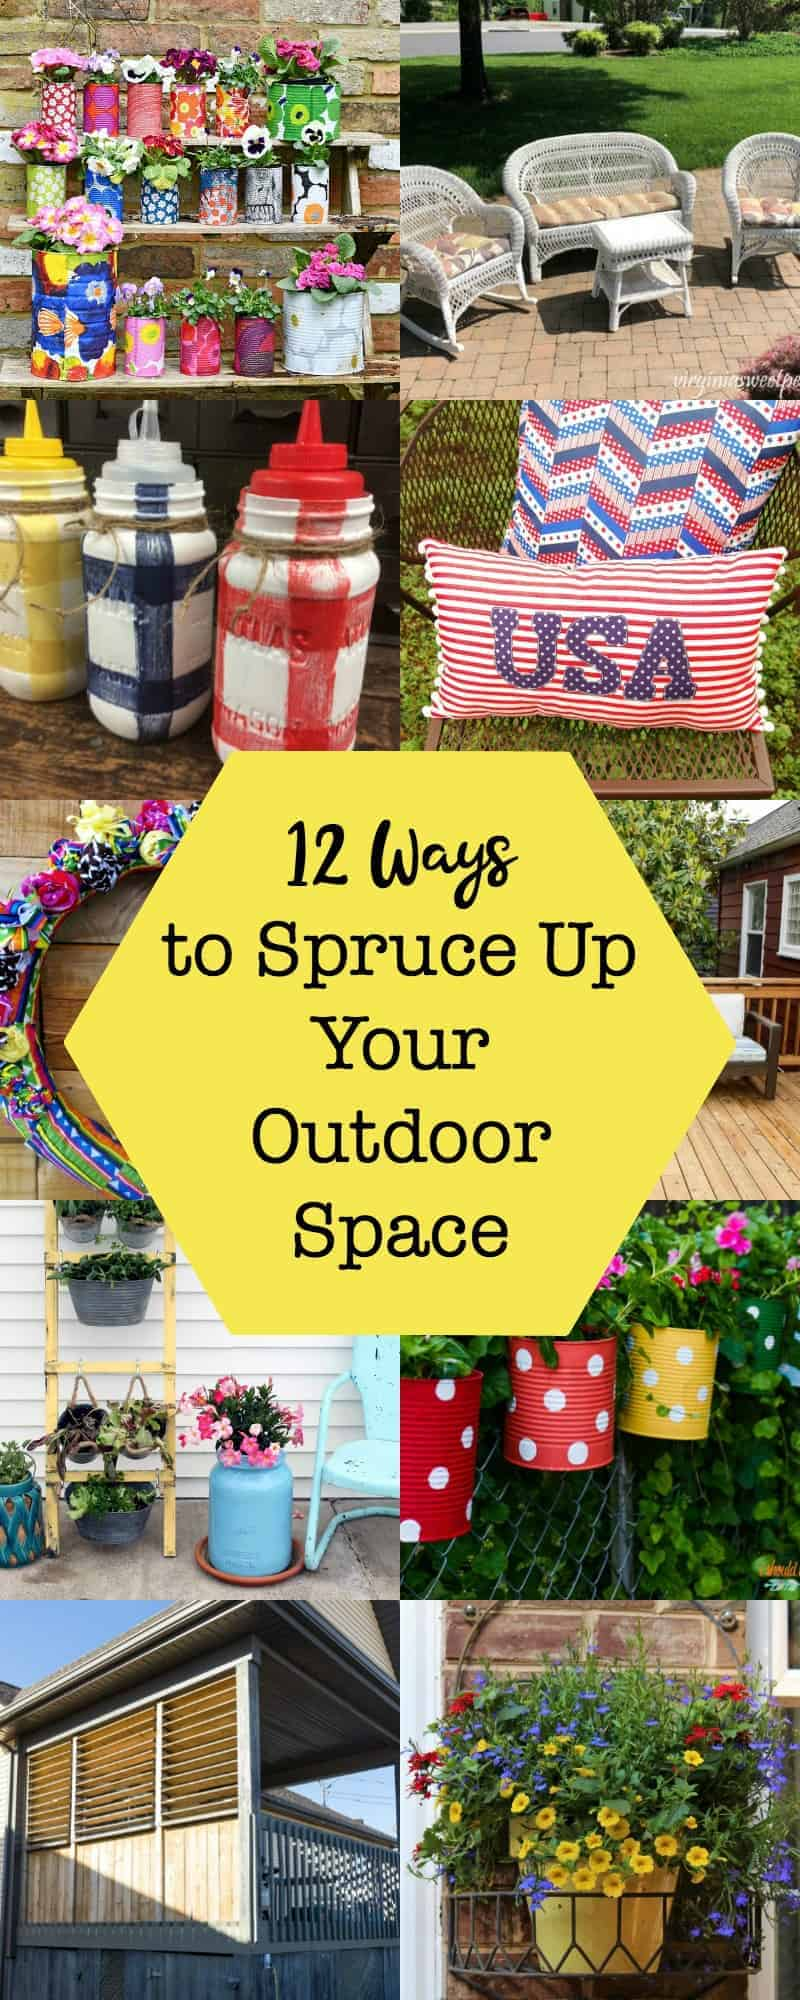 Vertical collage with yellow overlay of 12 ways to spruce up your outdoor living space